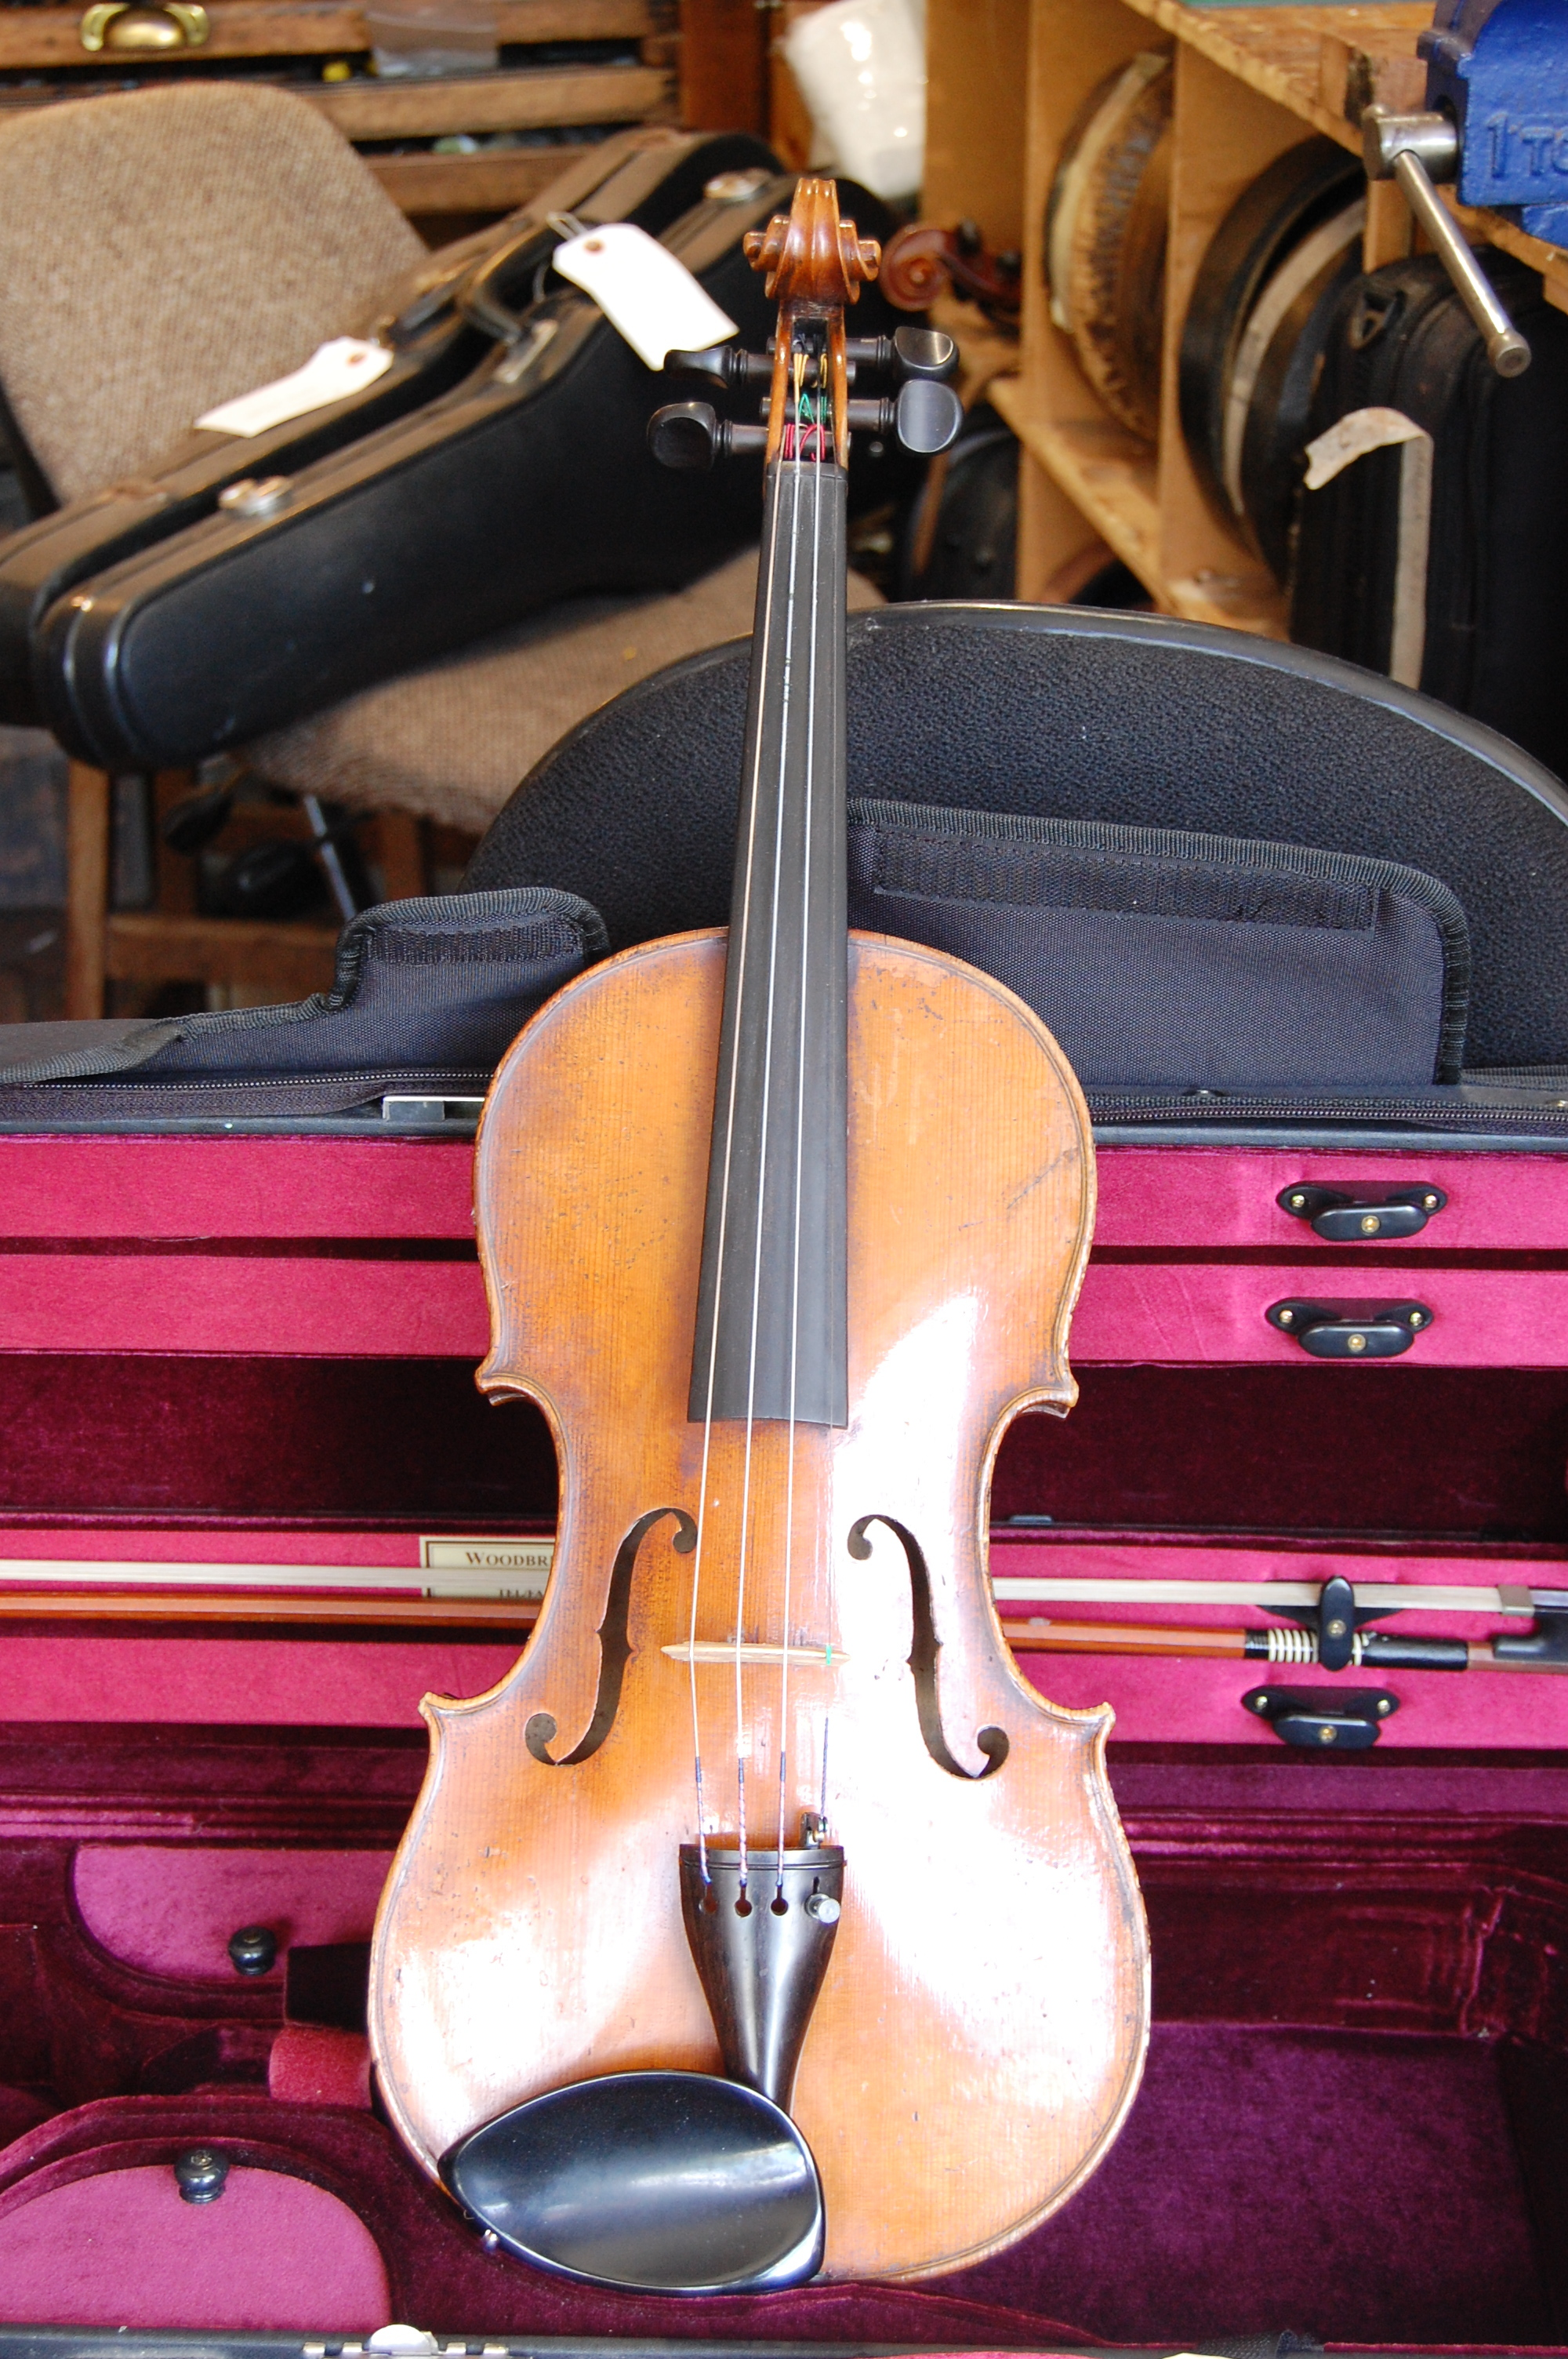 Full size German violin C1860 with case and bow, on sale for £1,000 CS002  Condition: Good  Tone: 5/5  Value for money: 4/5  Overall rating: 4/5